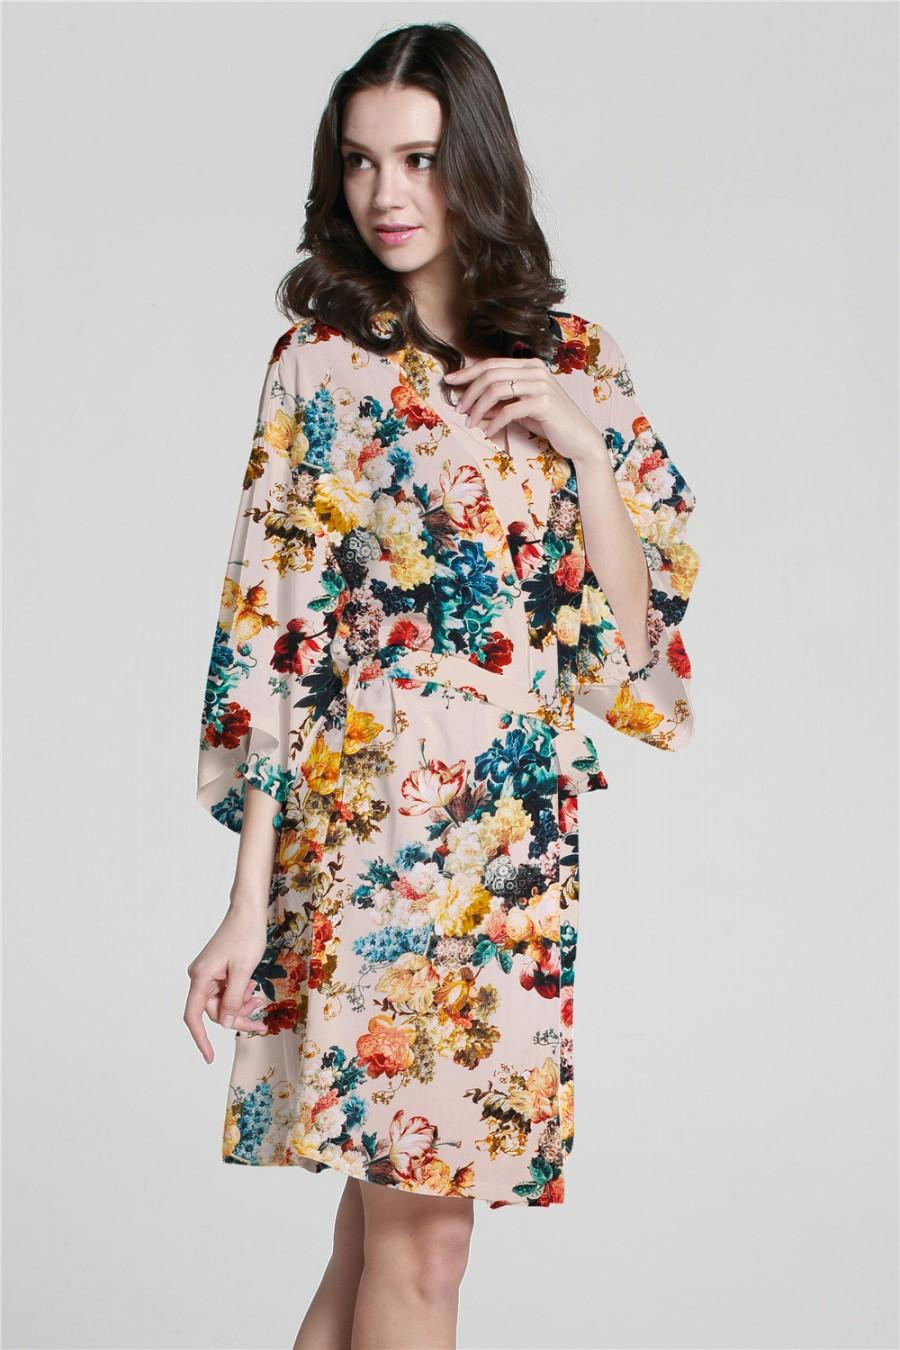 d8a91b849f55c XF0001 Custom White Floral Kimono Robes For Wedding Party Gifts Bridesmaid  And Bride Dressing Gown Children Shower Robe Bridal Party Dress